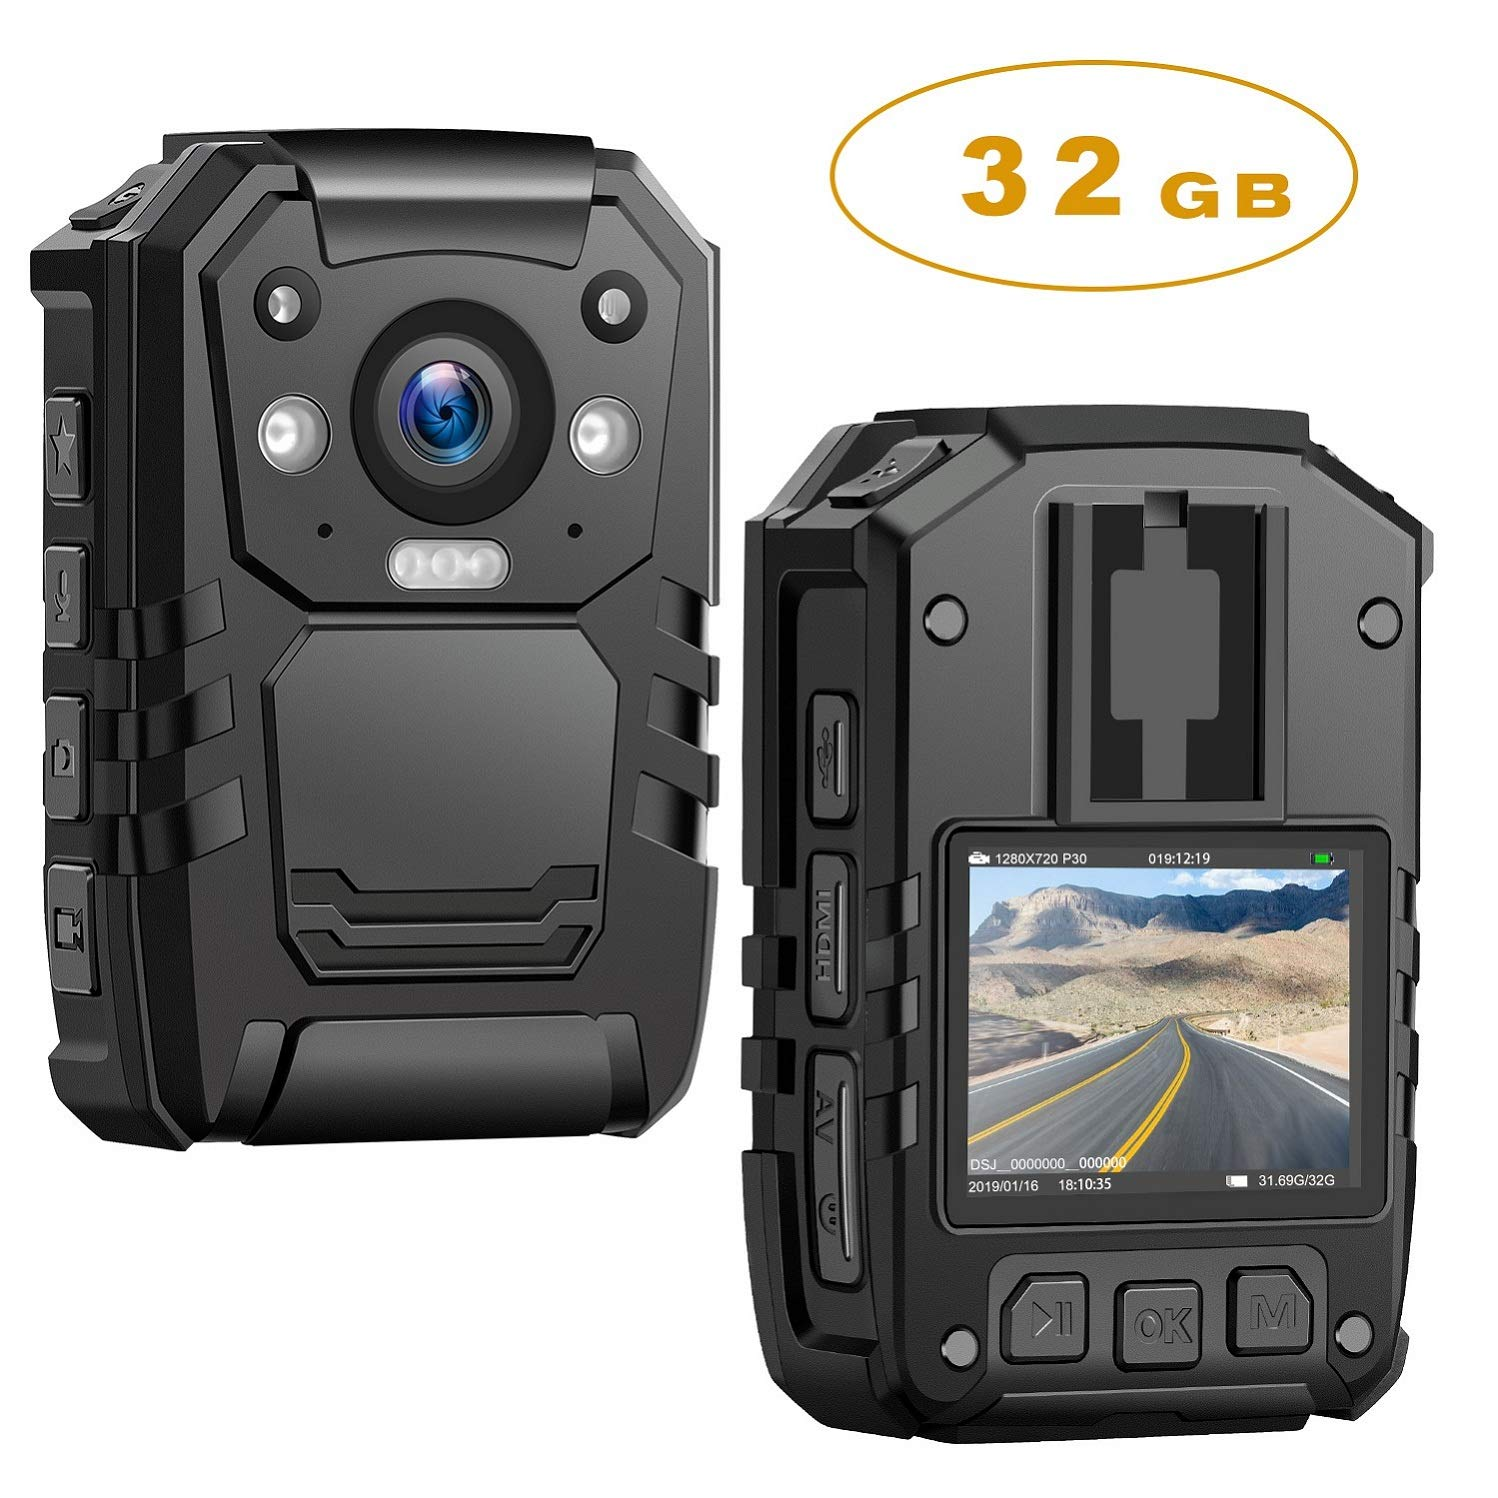 1296P HD Police Body Camera,32G Memory,CammPro Premium Portable Body Camera,Waterproof Body-Worn Camera with 2 Inch Display,Night Vision,GPS for Law Enforcement Recorder,Security Guards,Personal Use by CammPro